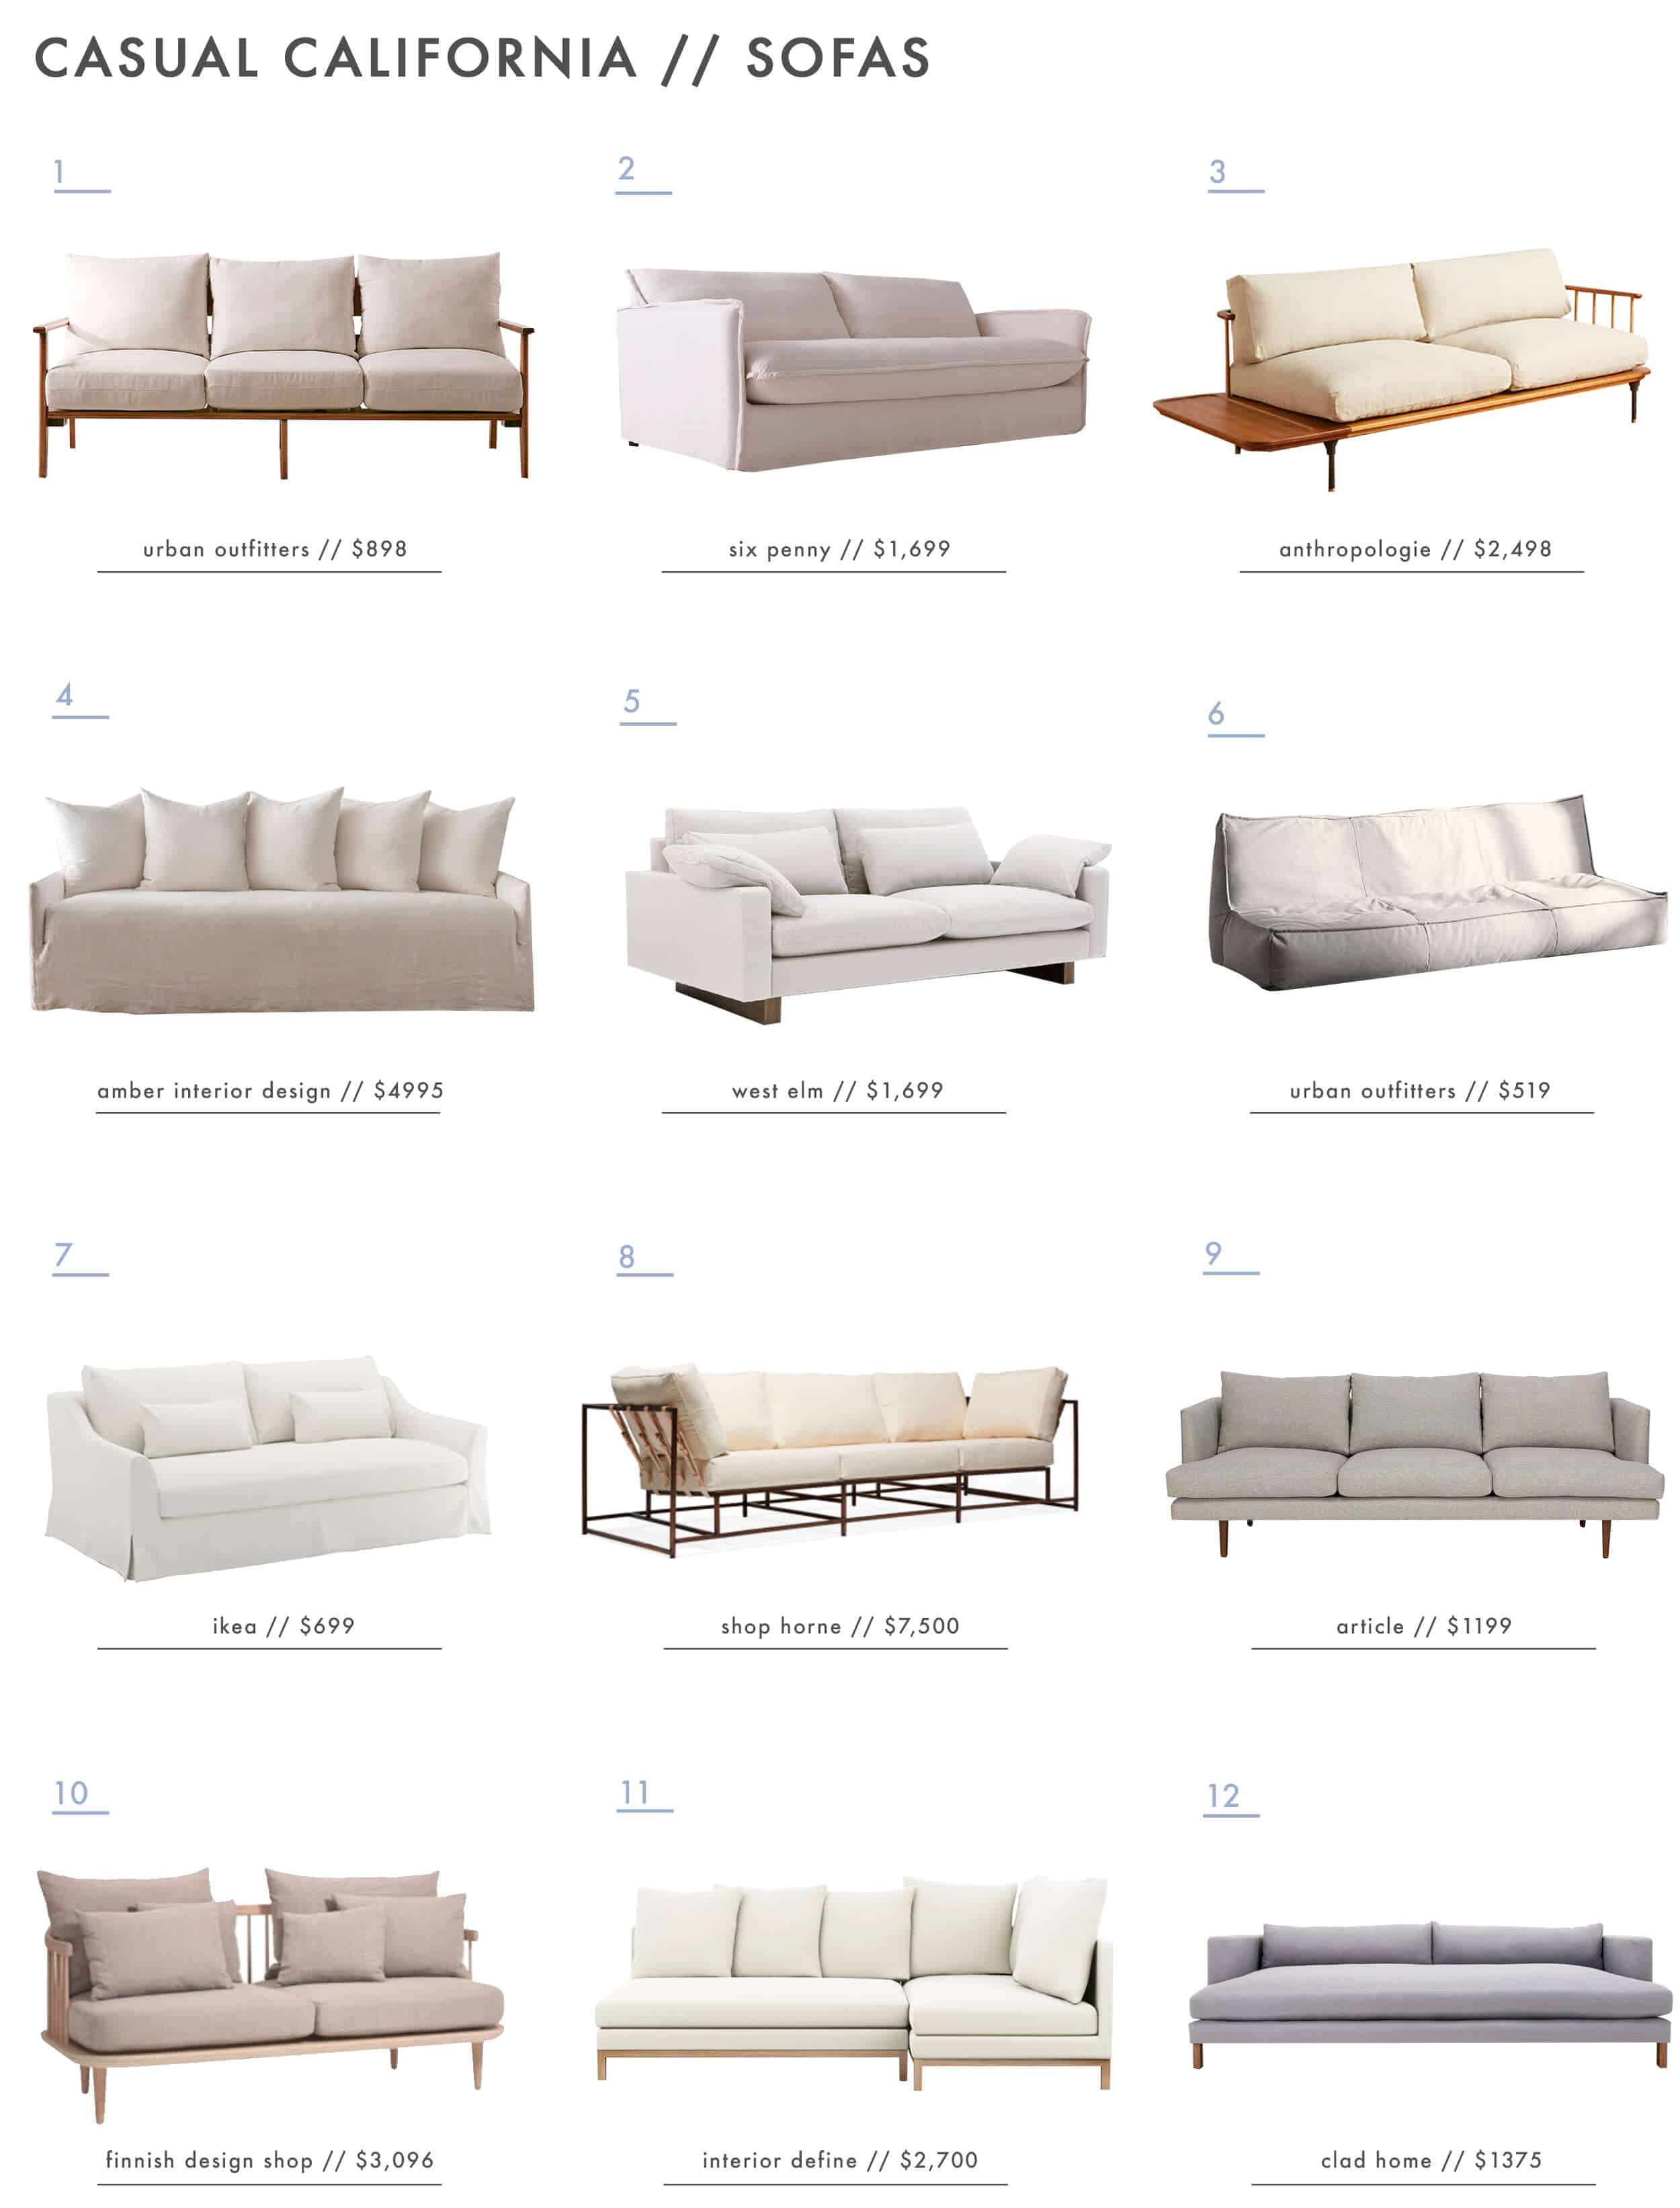 Emily-Henderson_Efforless_California_Casual_Furniture_Ingredients_Sofas_1